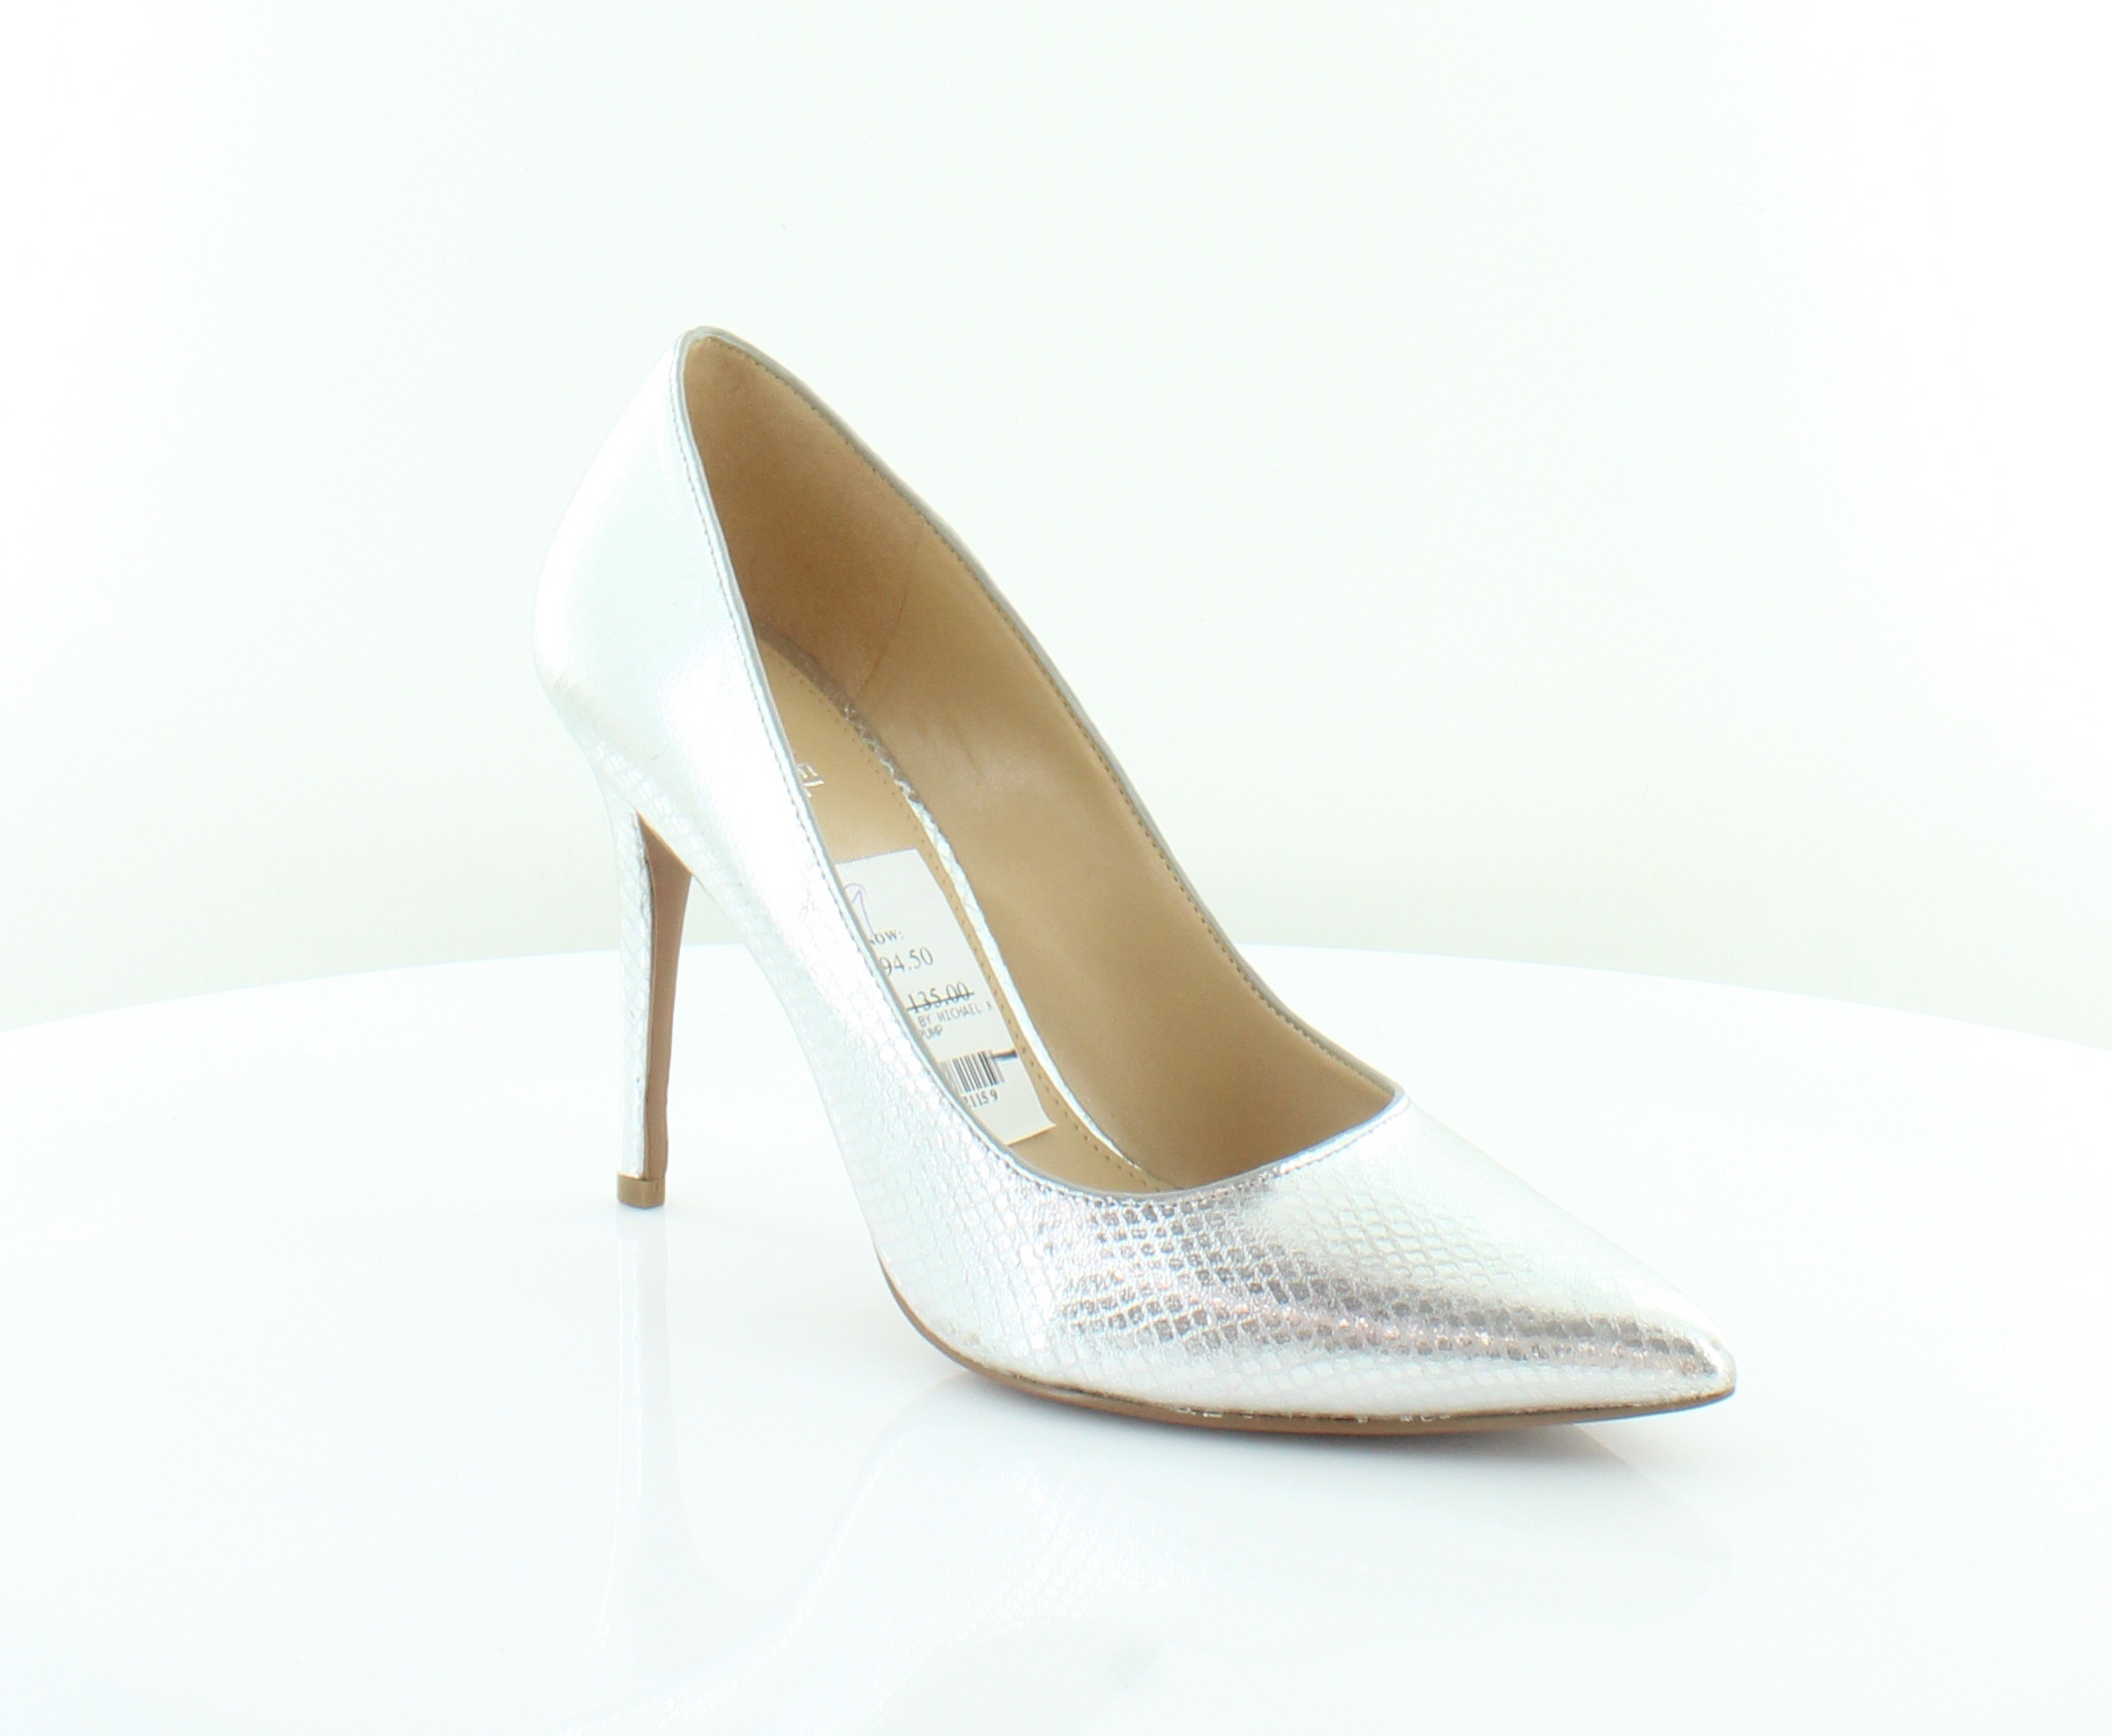 9b974fafb5eb Michael Kors Claire Pump Silver Womens Shoes Size 10 M Heels MSRP  135